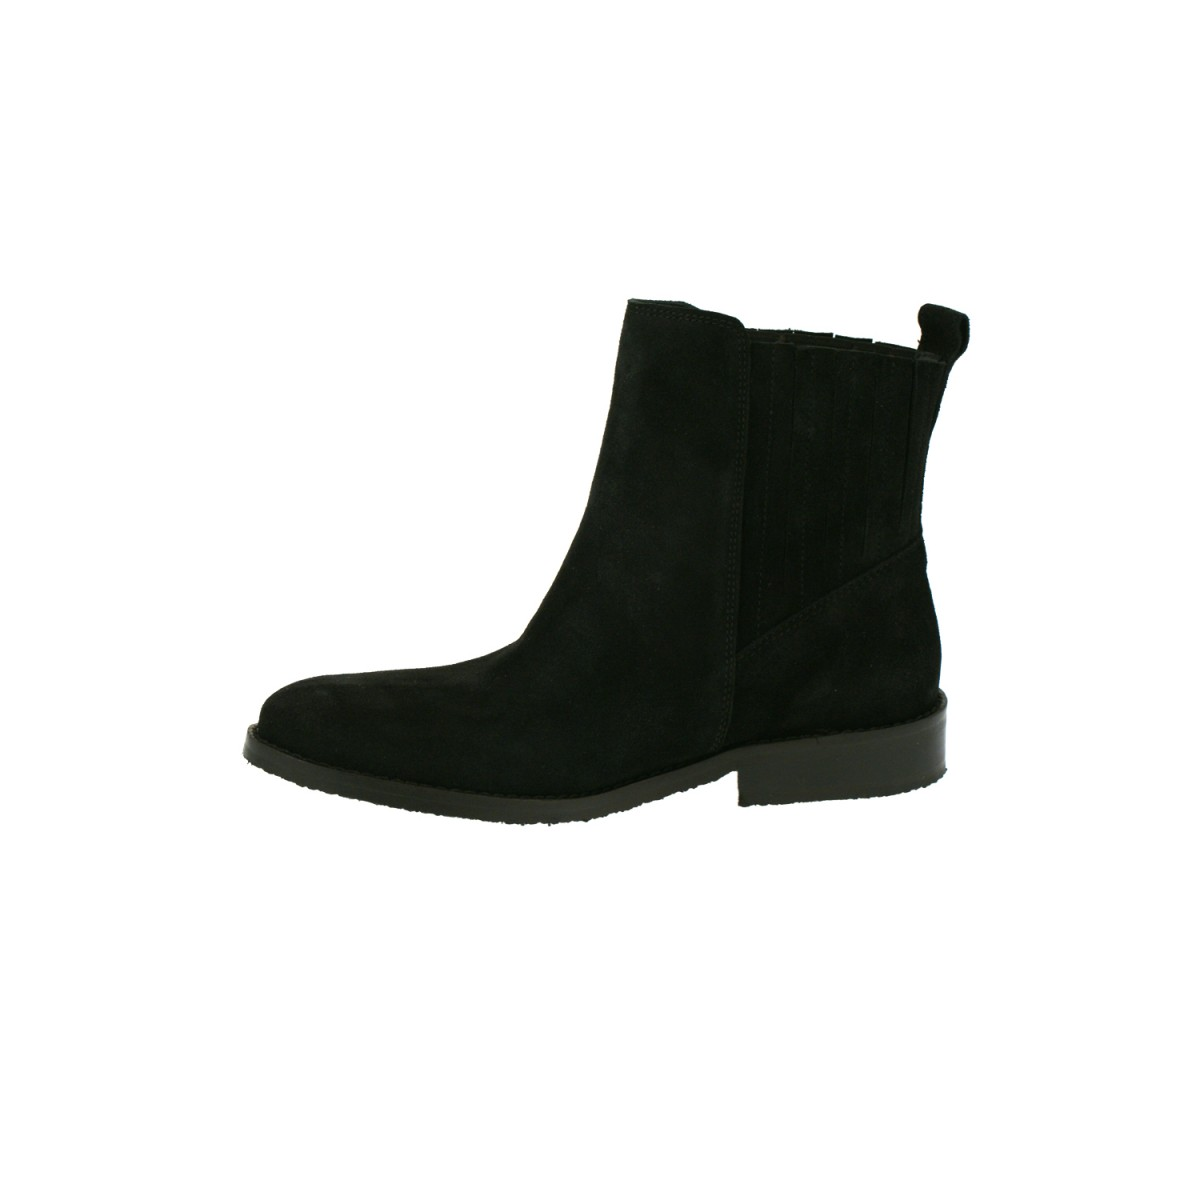 Mentor W7142 Ankle Chelsea Boot Black Waxed Suede-31